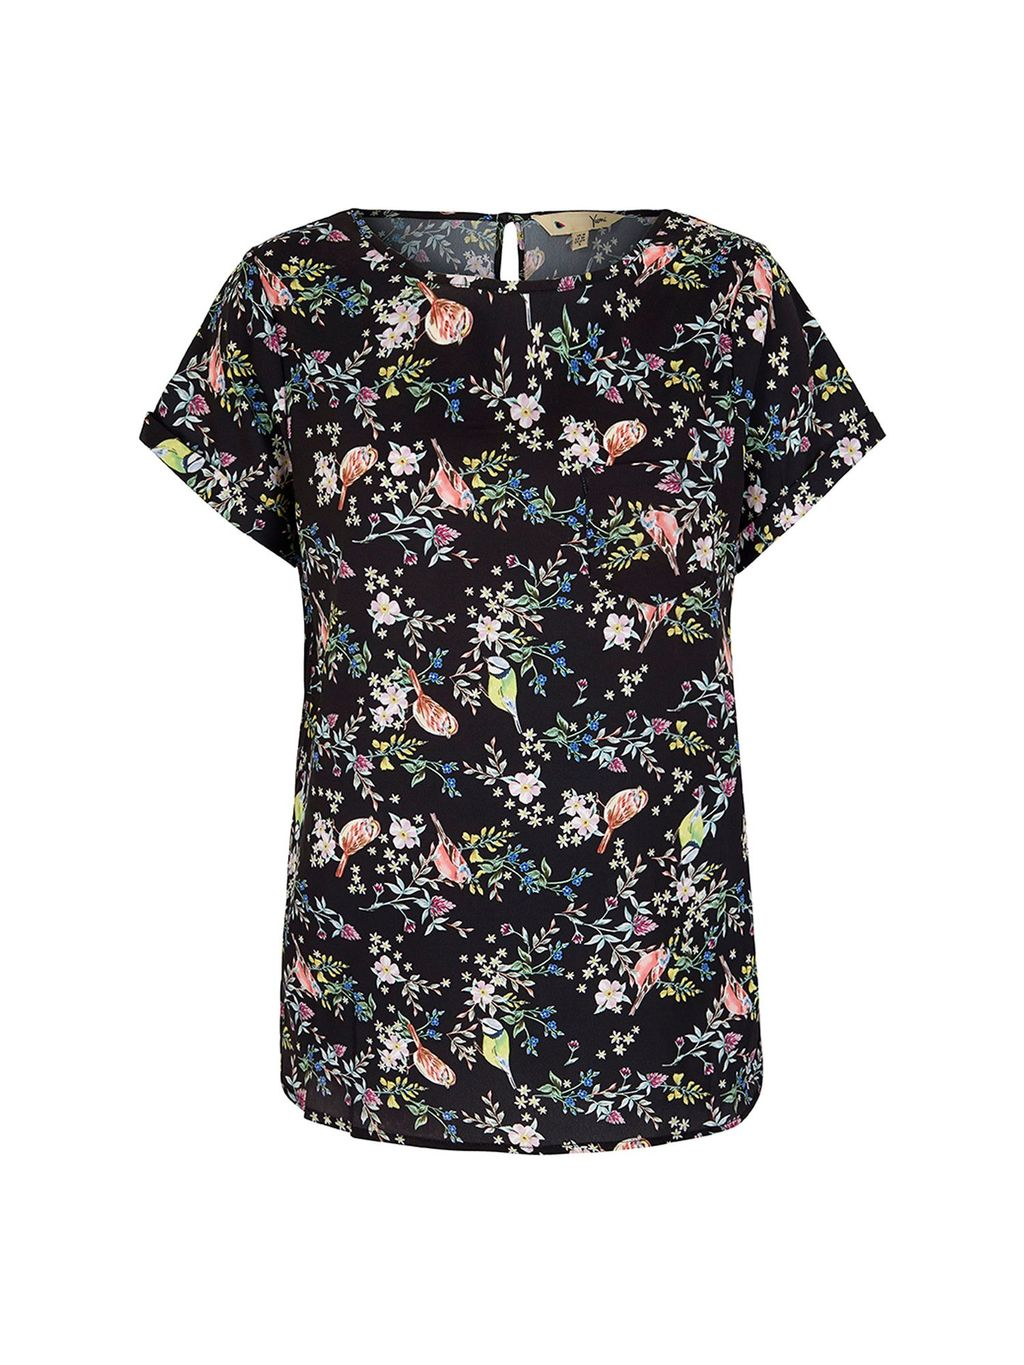 Bird Print Top, Black - secondary colour: blush; predominant colour: black; occasions: casual; length: standard; style: top; fibres: polyester/polyamide - 100%; fit: body skimming; neckline: crew; sleeve length: short sleeve; sleeve style: standard; pattern type: fabric; pattern: florals; texture group: jersey - stretchy/drapey; multicoloured: multicoloured; season: s/s 2016; wardrobe: highlight